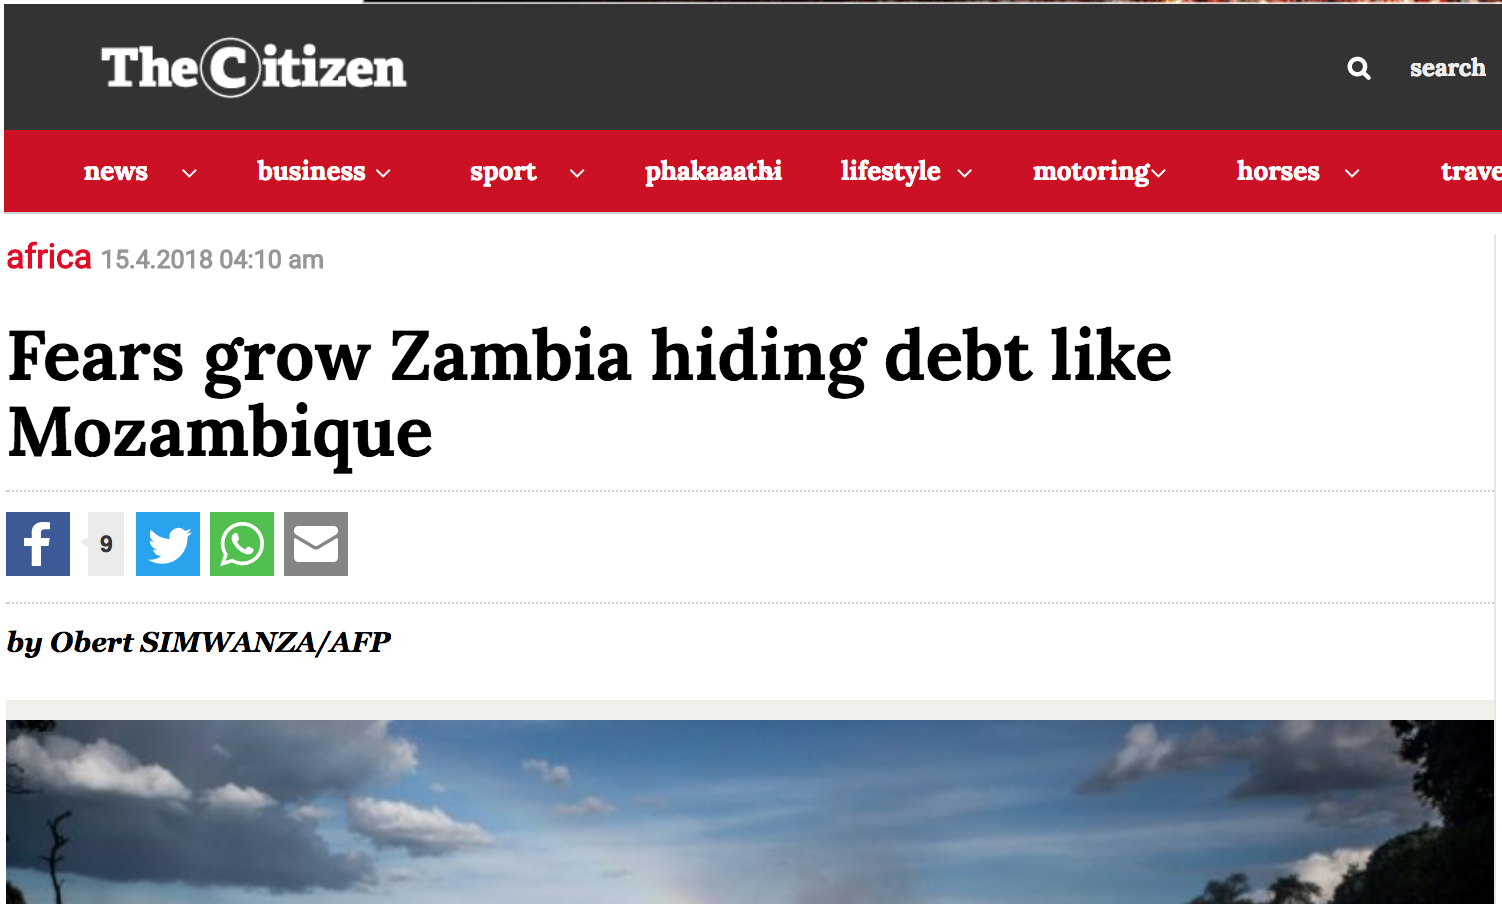 Lenders, International markets insist Zambia has hidden debt